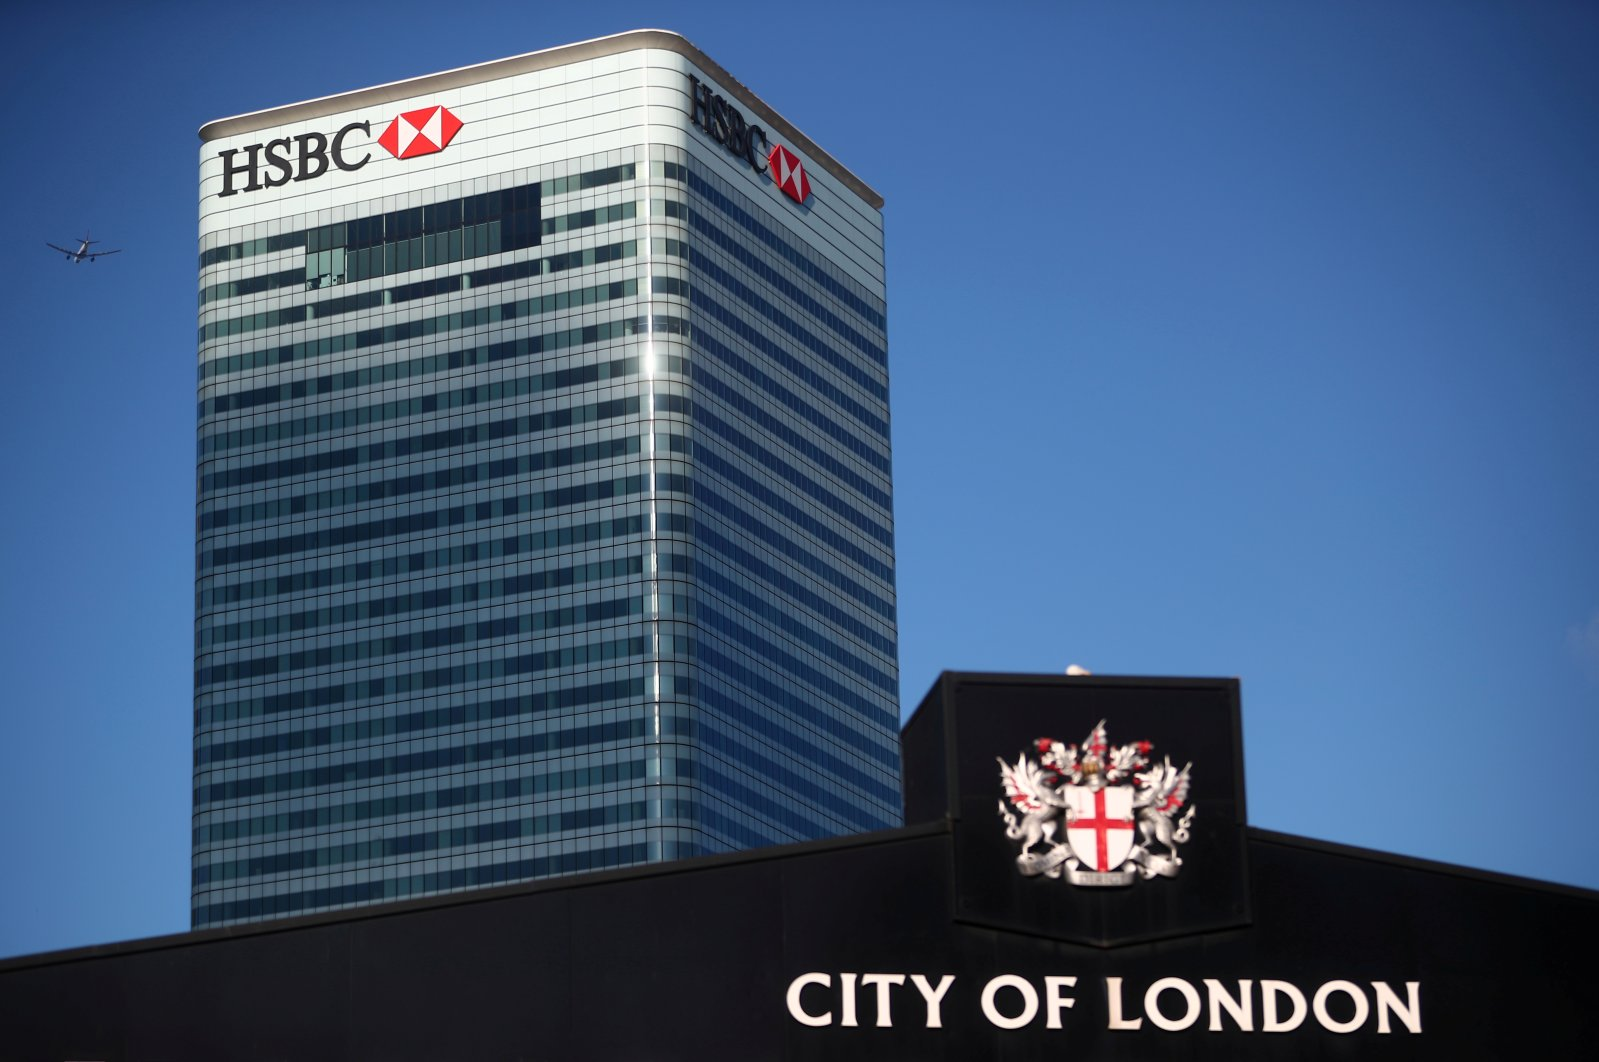 HSBC's building in Canary Wharf is seen behind a City of London sign outside Billingsgate Market in London, Britain, Aug. 8, 2018. (Reuters Photo)